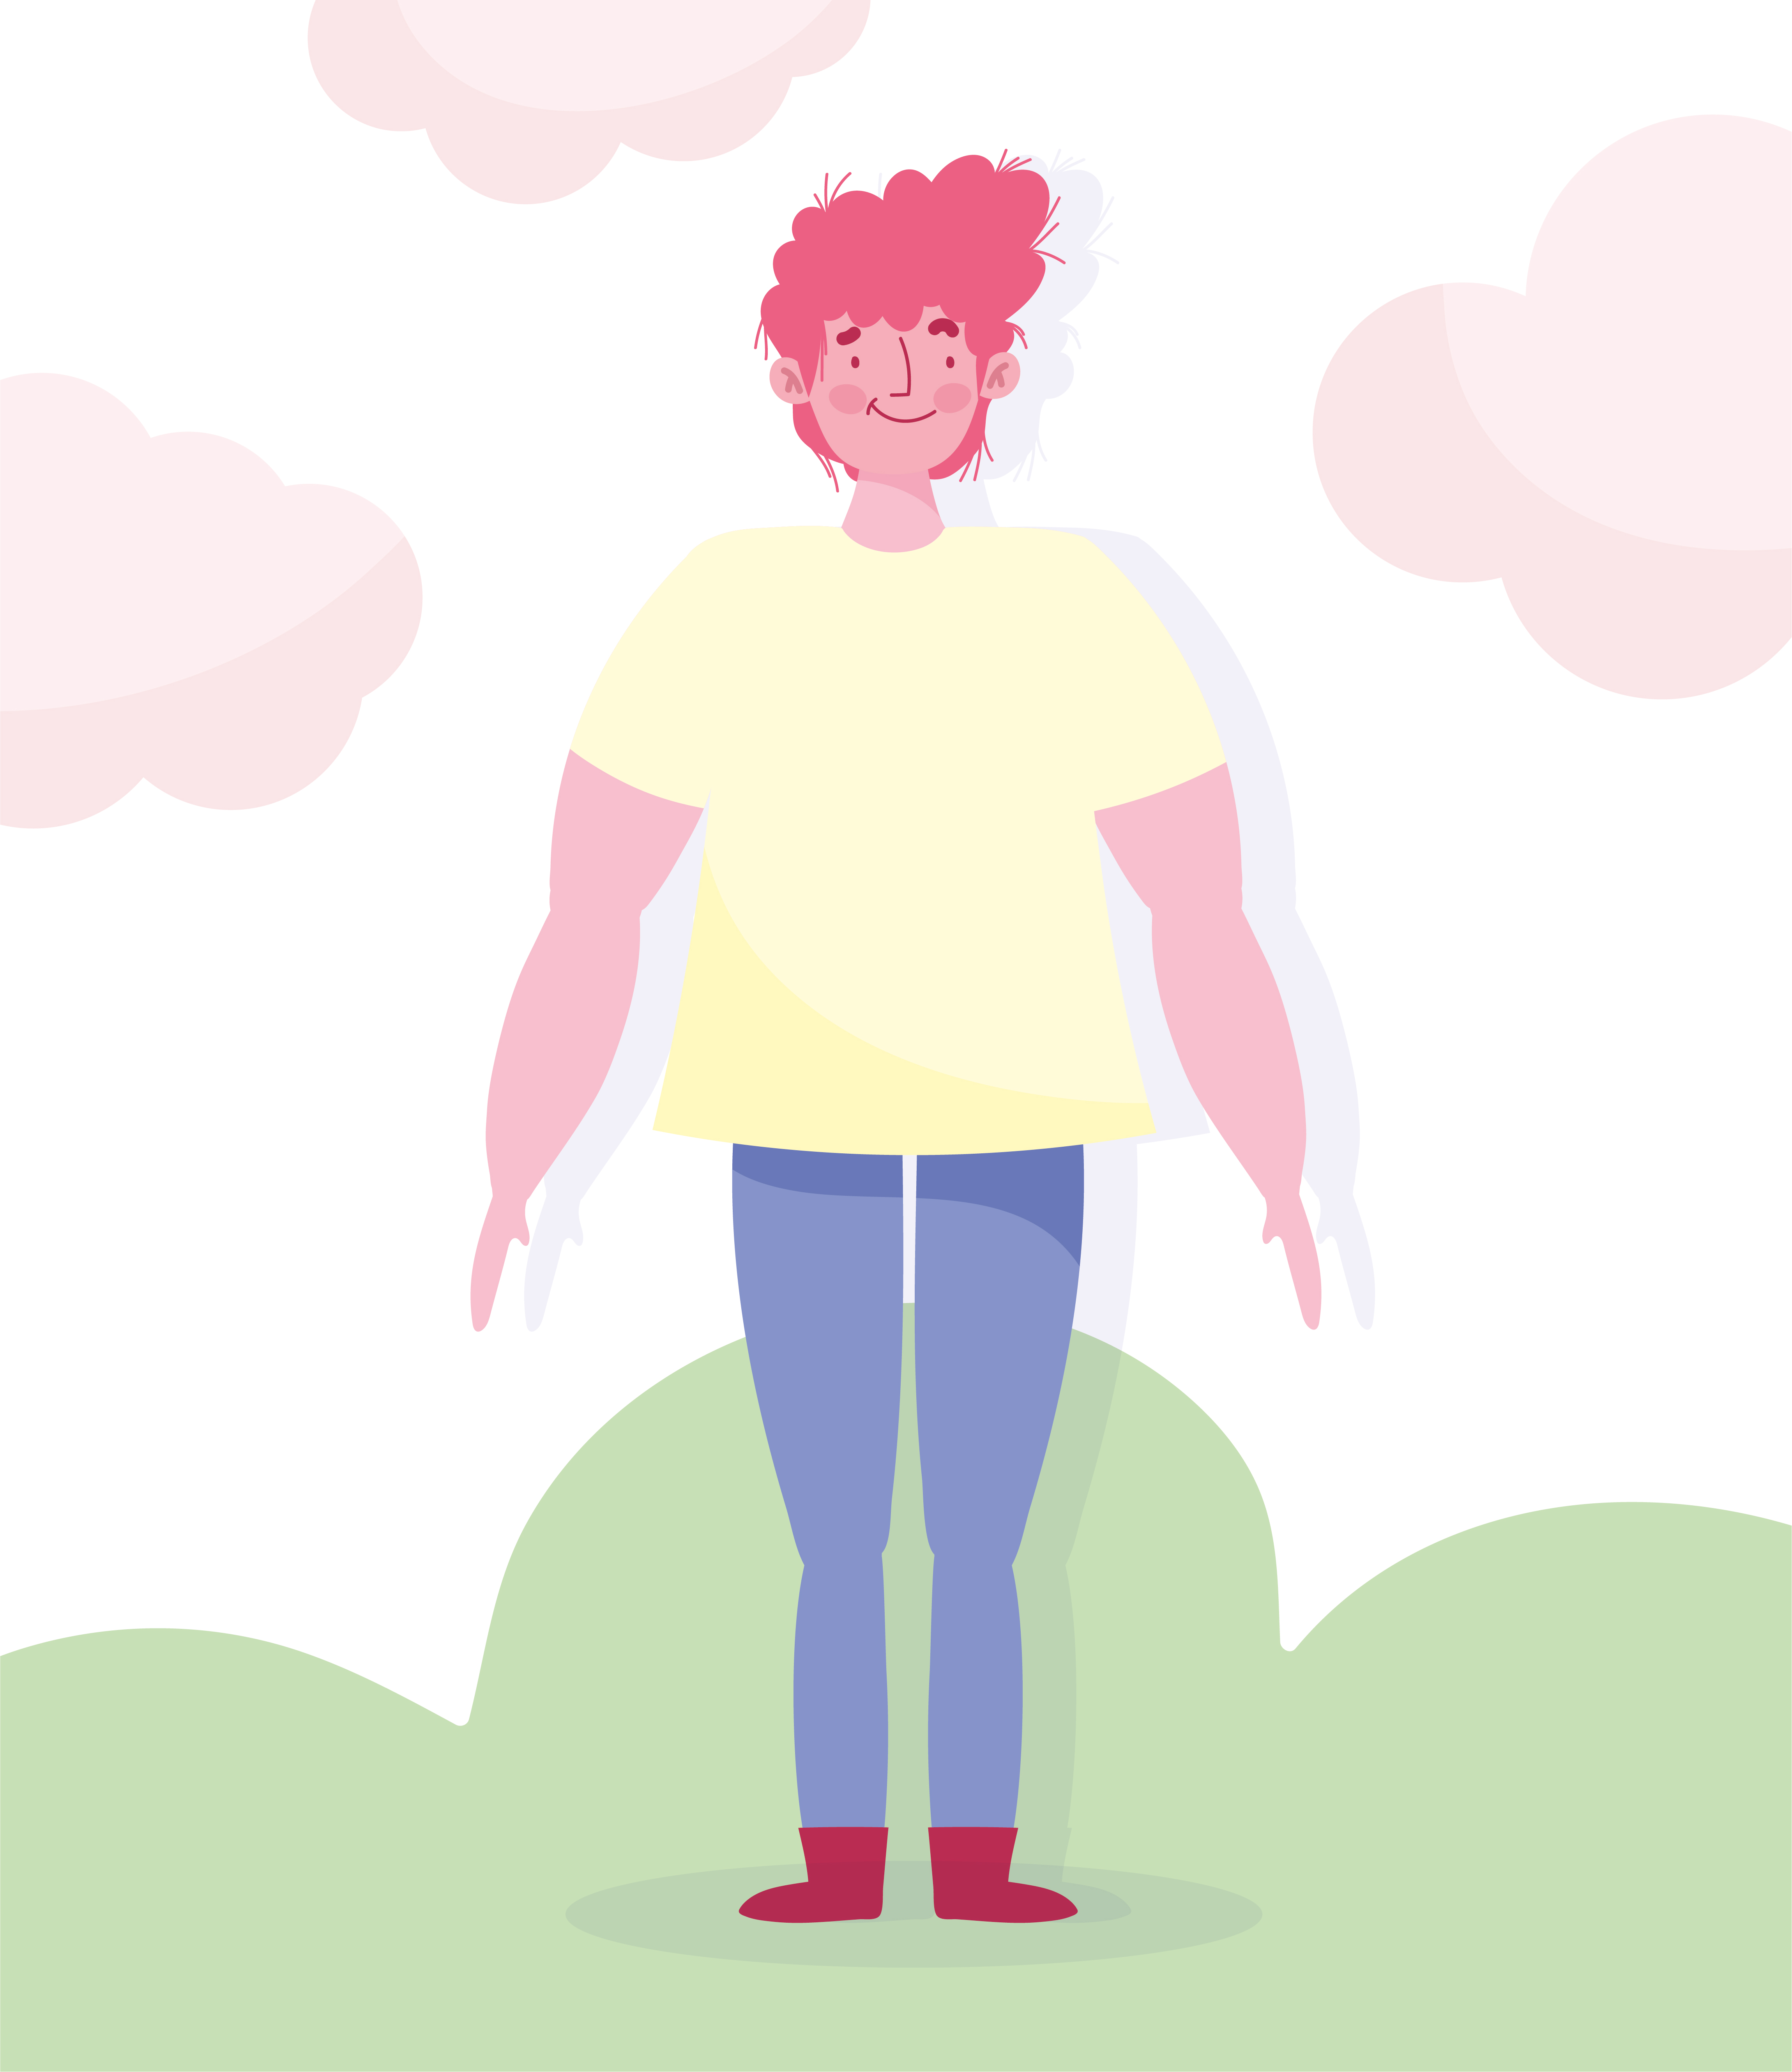 Male character standing outdoors vector